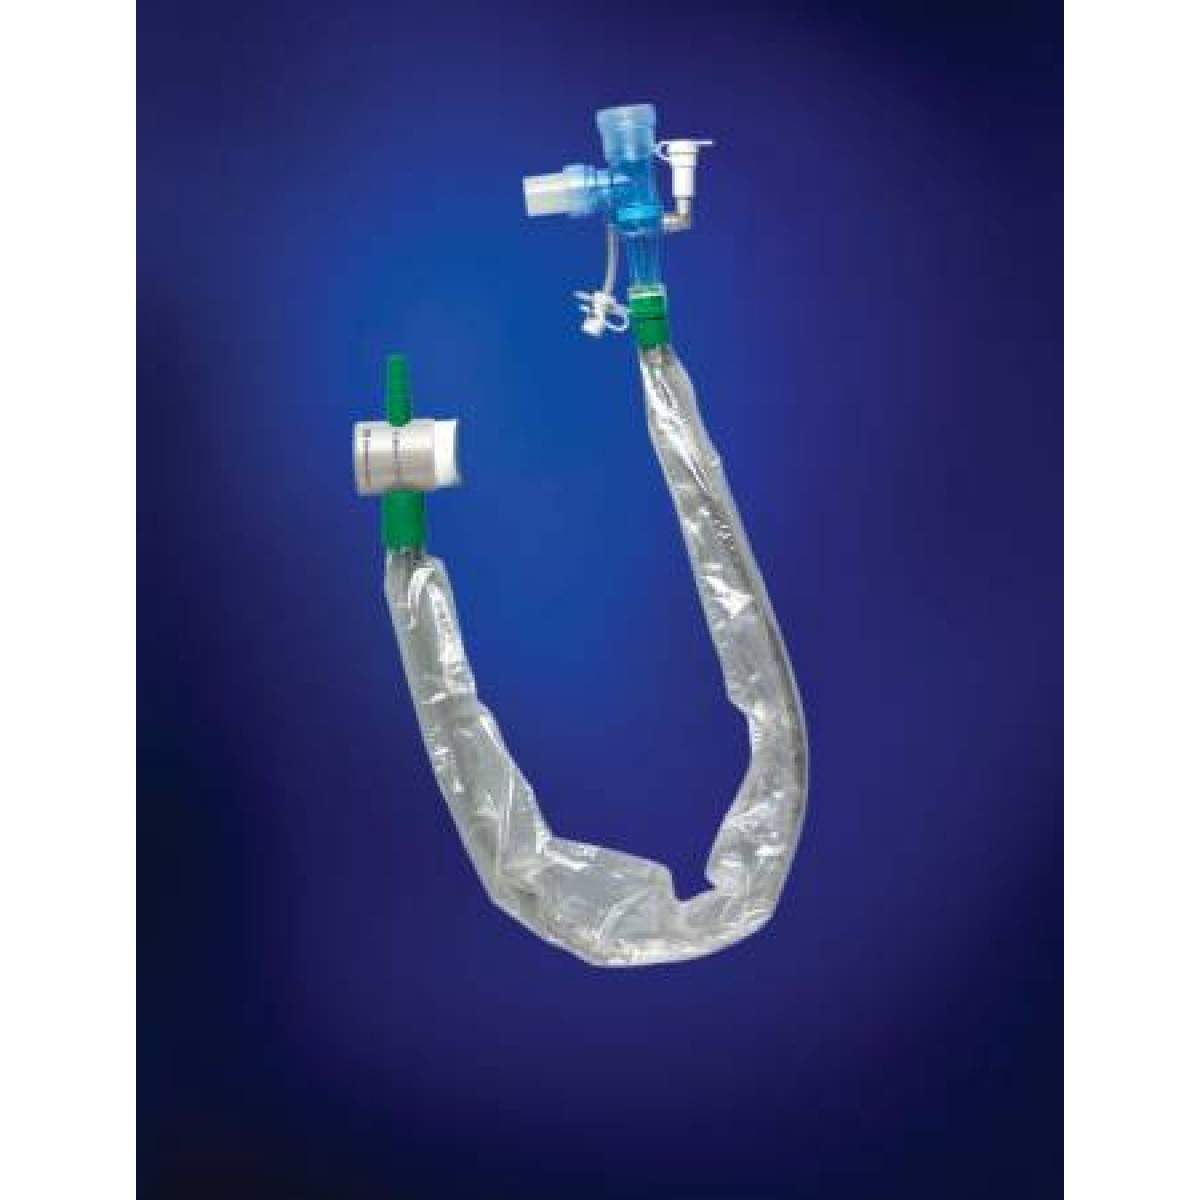 Trach Care 72 Closed System Catheter 14 Fr 22703